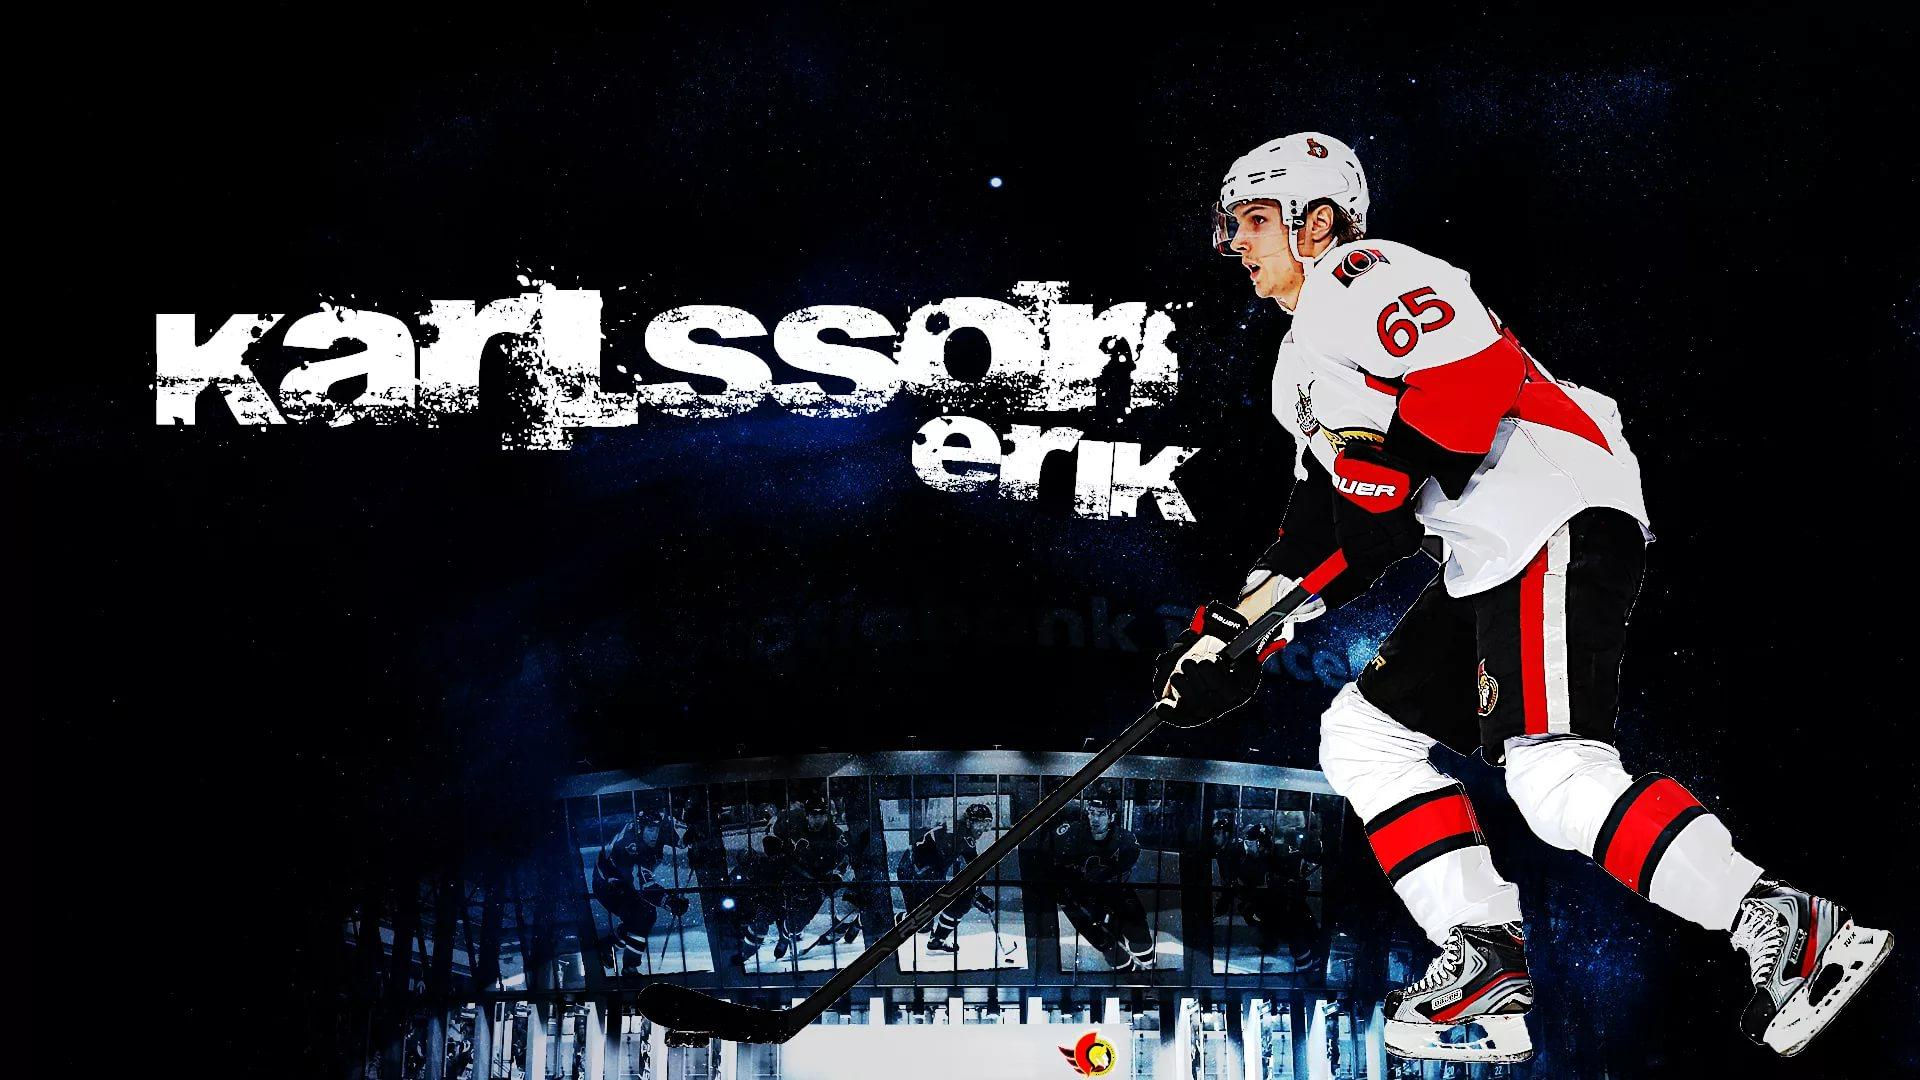 Erik Karlsson Wallpapers Widescreen Image Photos Pictures